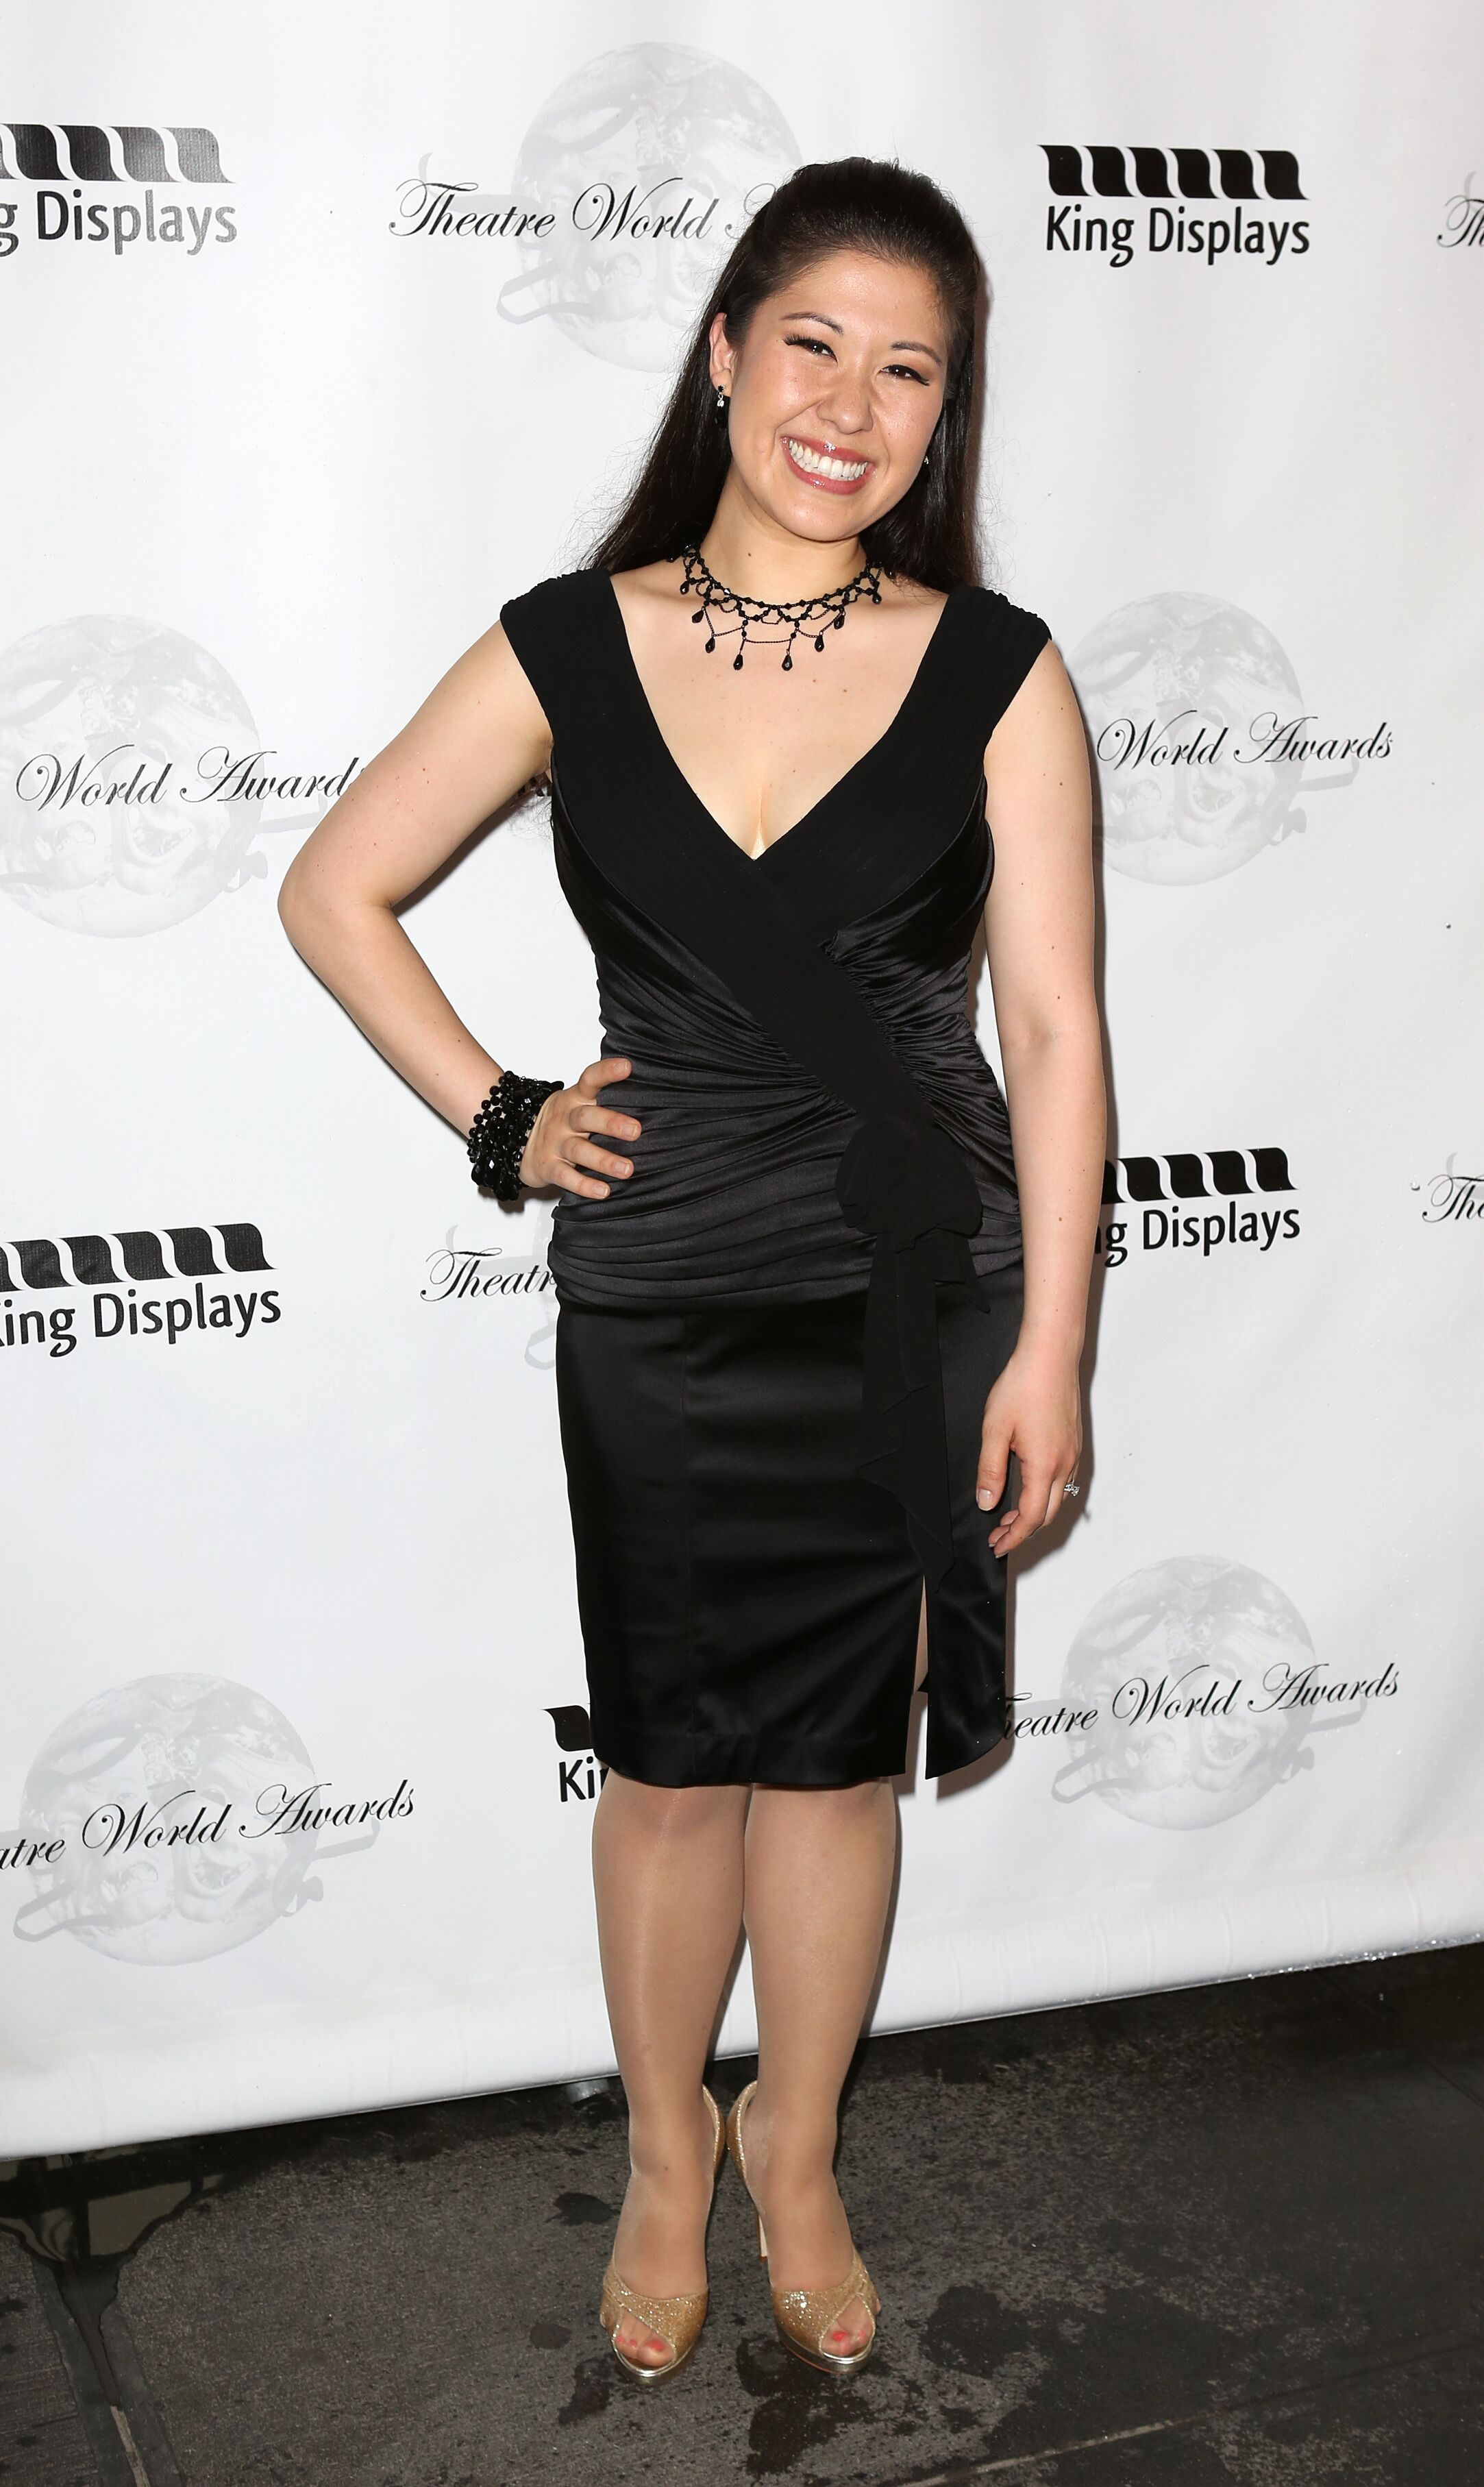 Ruthie Ann Miles at the 69th Annual Theatre World Awards in New York City on June 03, 2013. | Photo: Getty Images